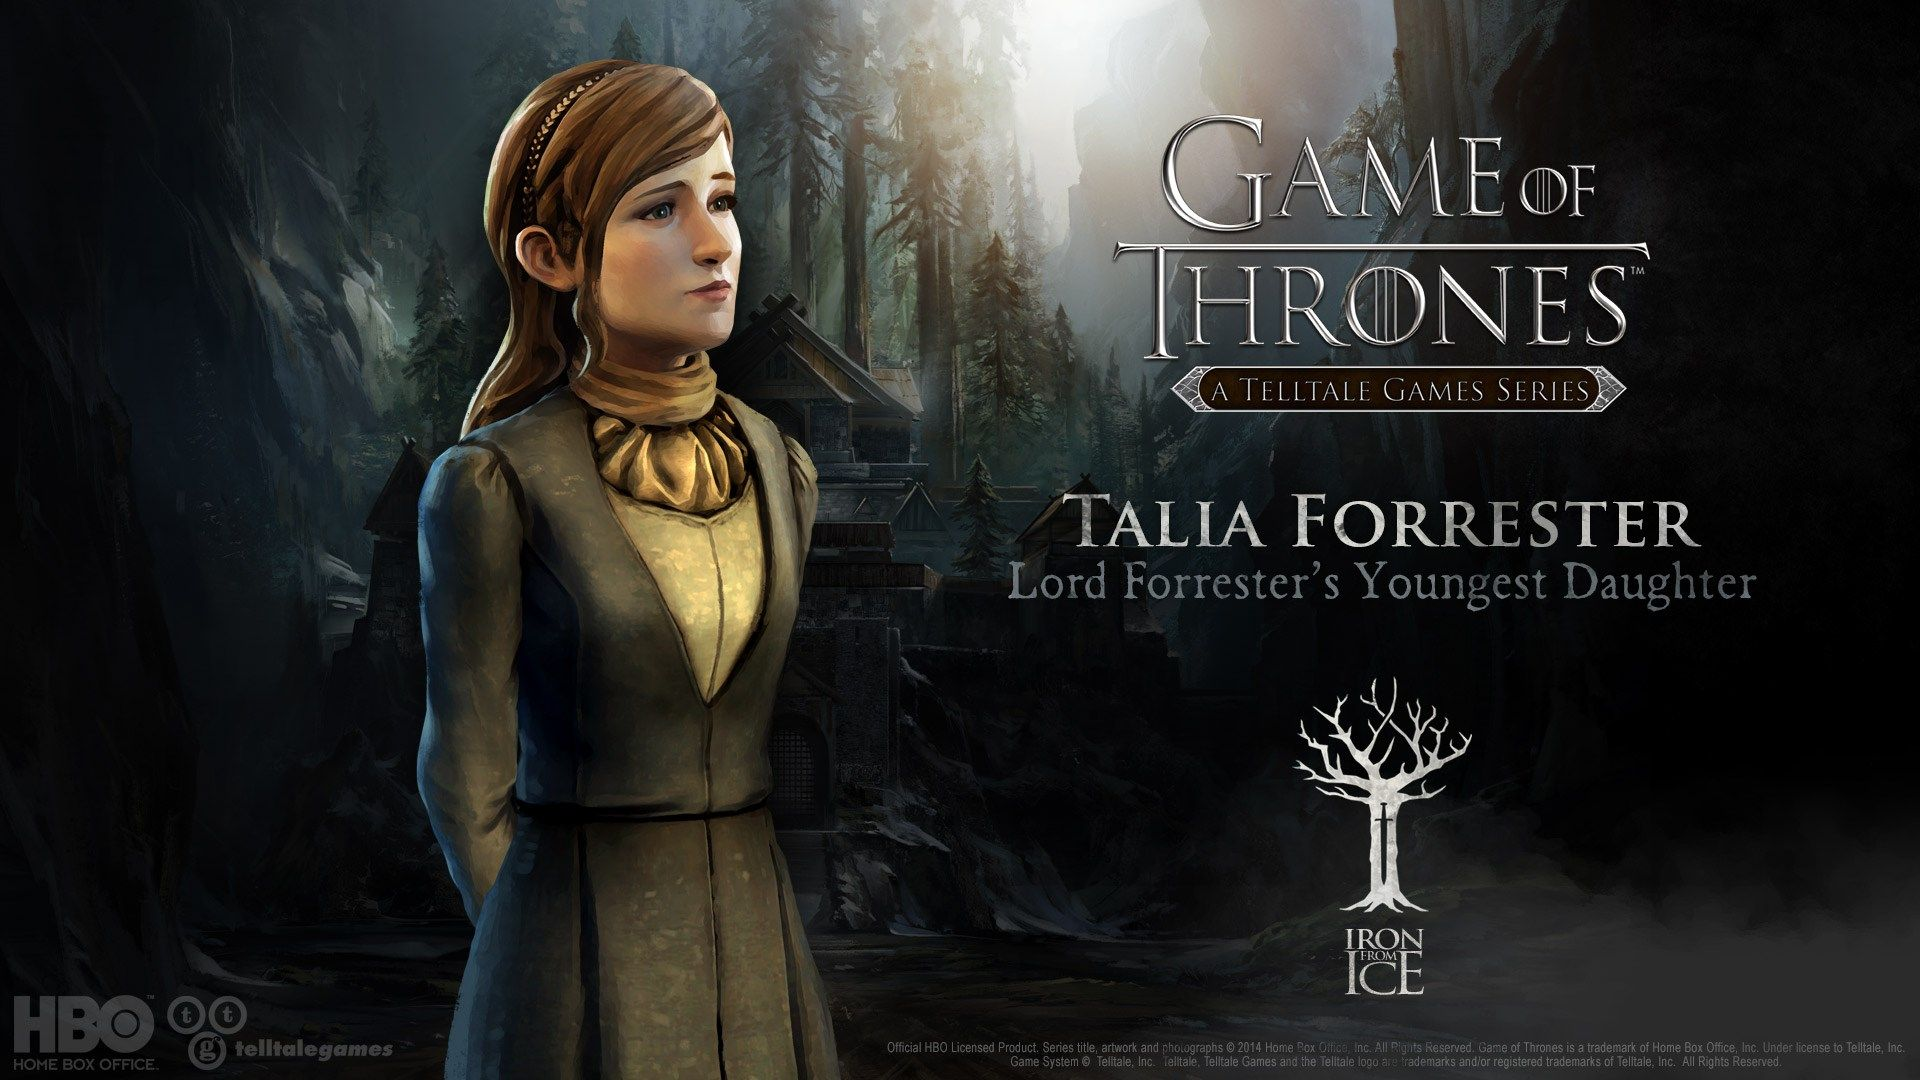 1920x1080 Hdq Images Game Of Thrones A Telltale Games Series Game Of Thrones Telltale Download Games Hbo